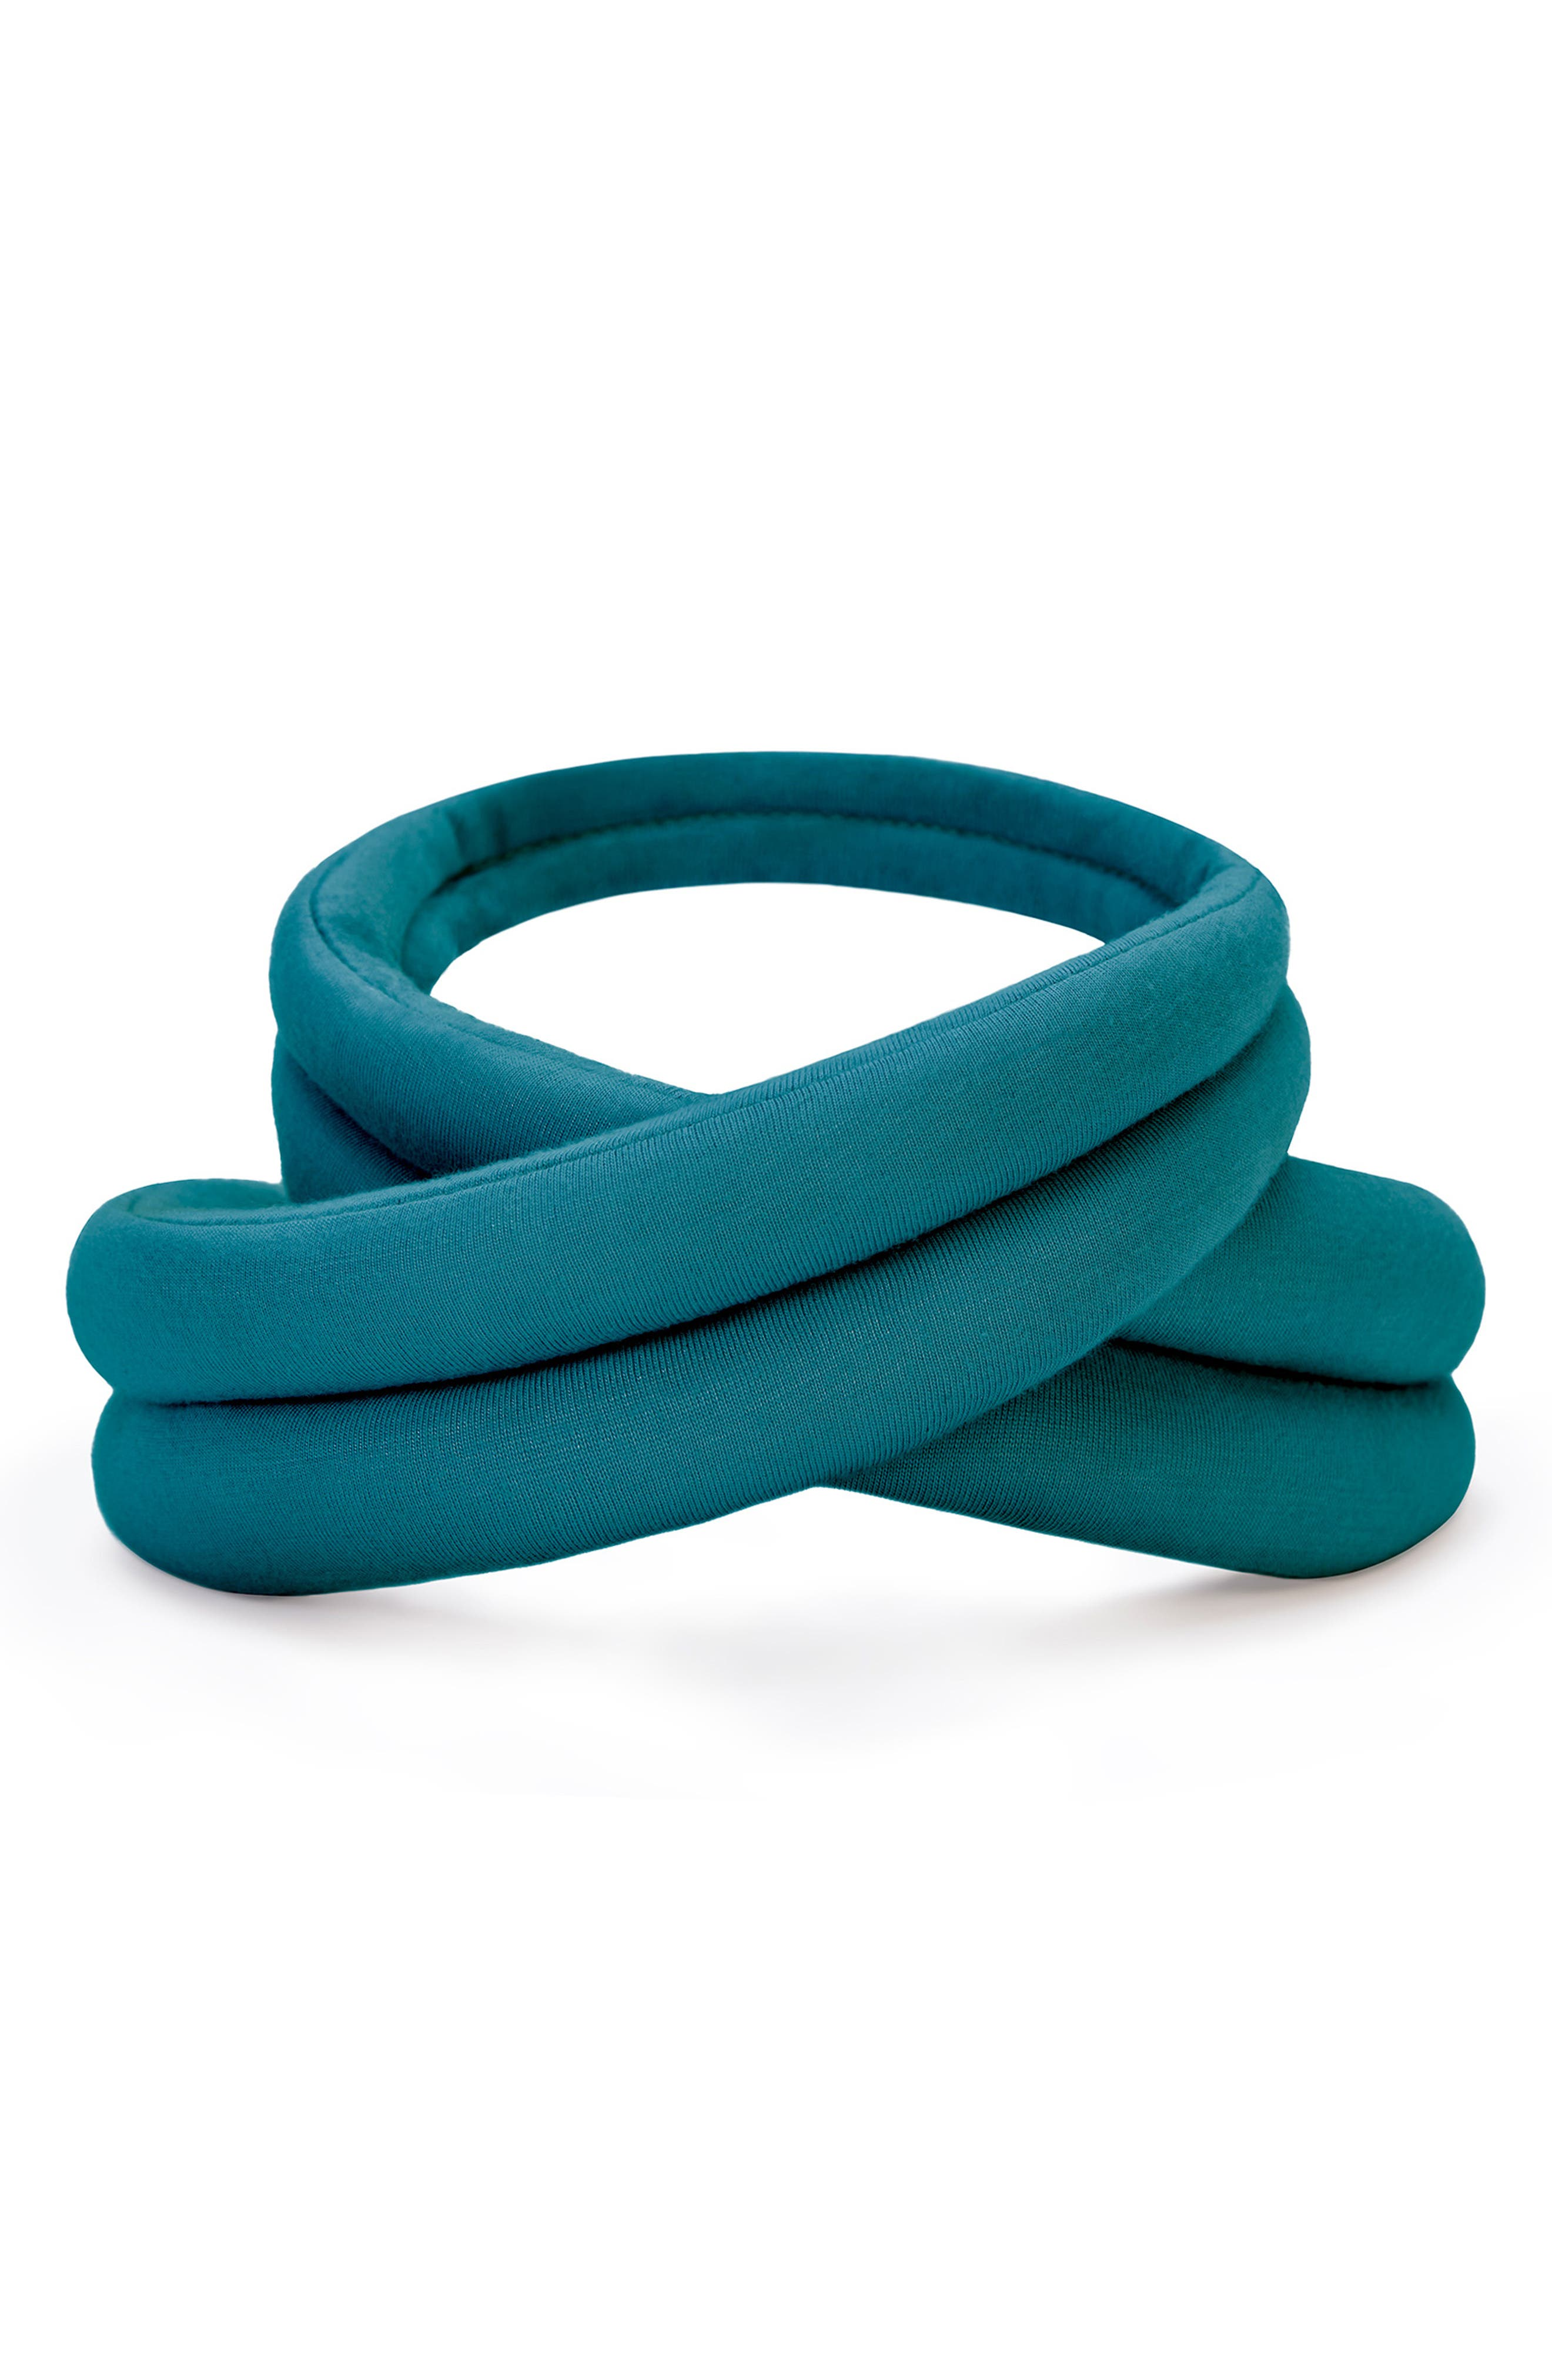 OSTRICHPILLOW<sup>®</sup> Loop Eye Mask, Main, color, BLUE REEF